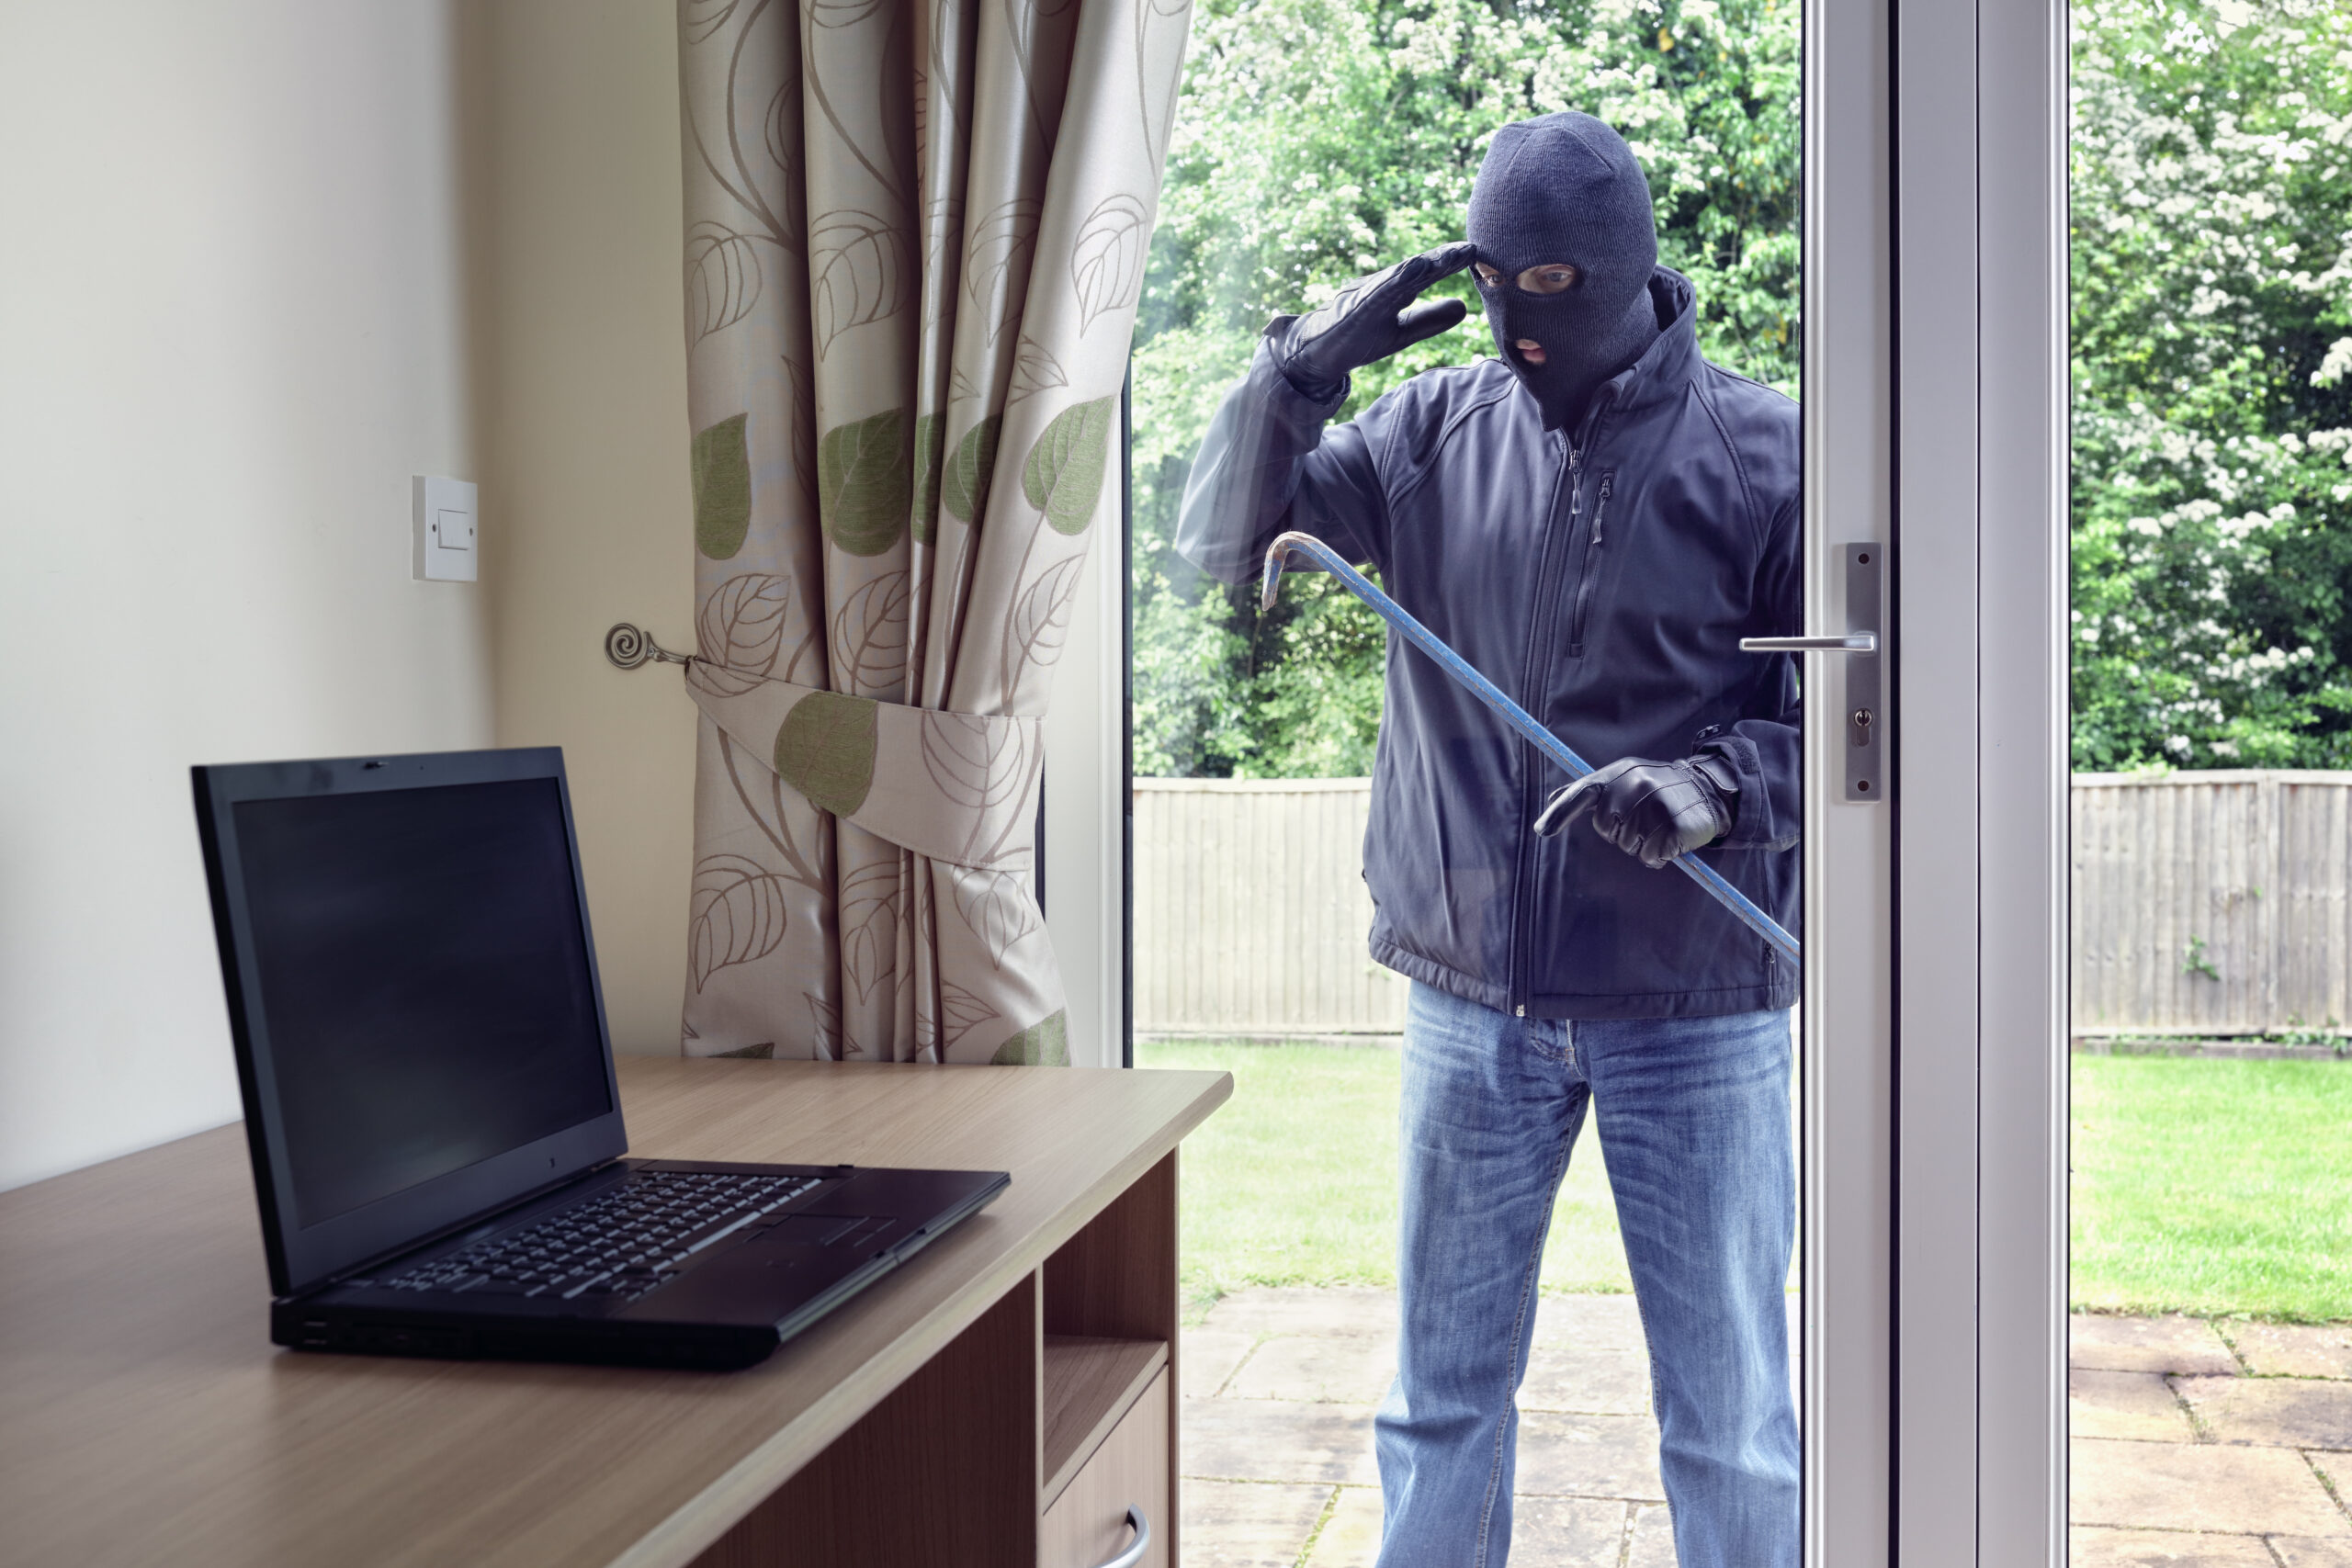 Home security system Colchester | Looking through window